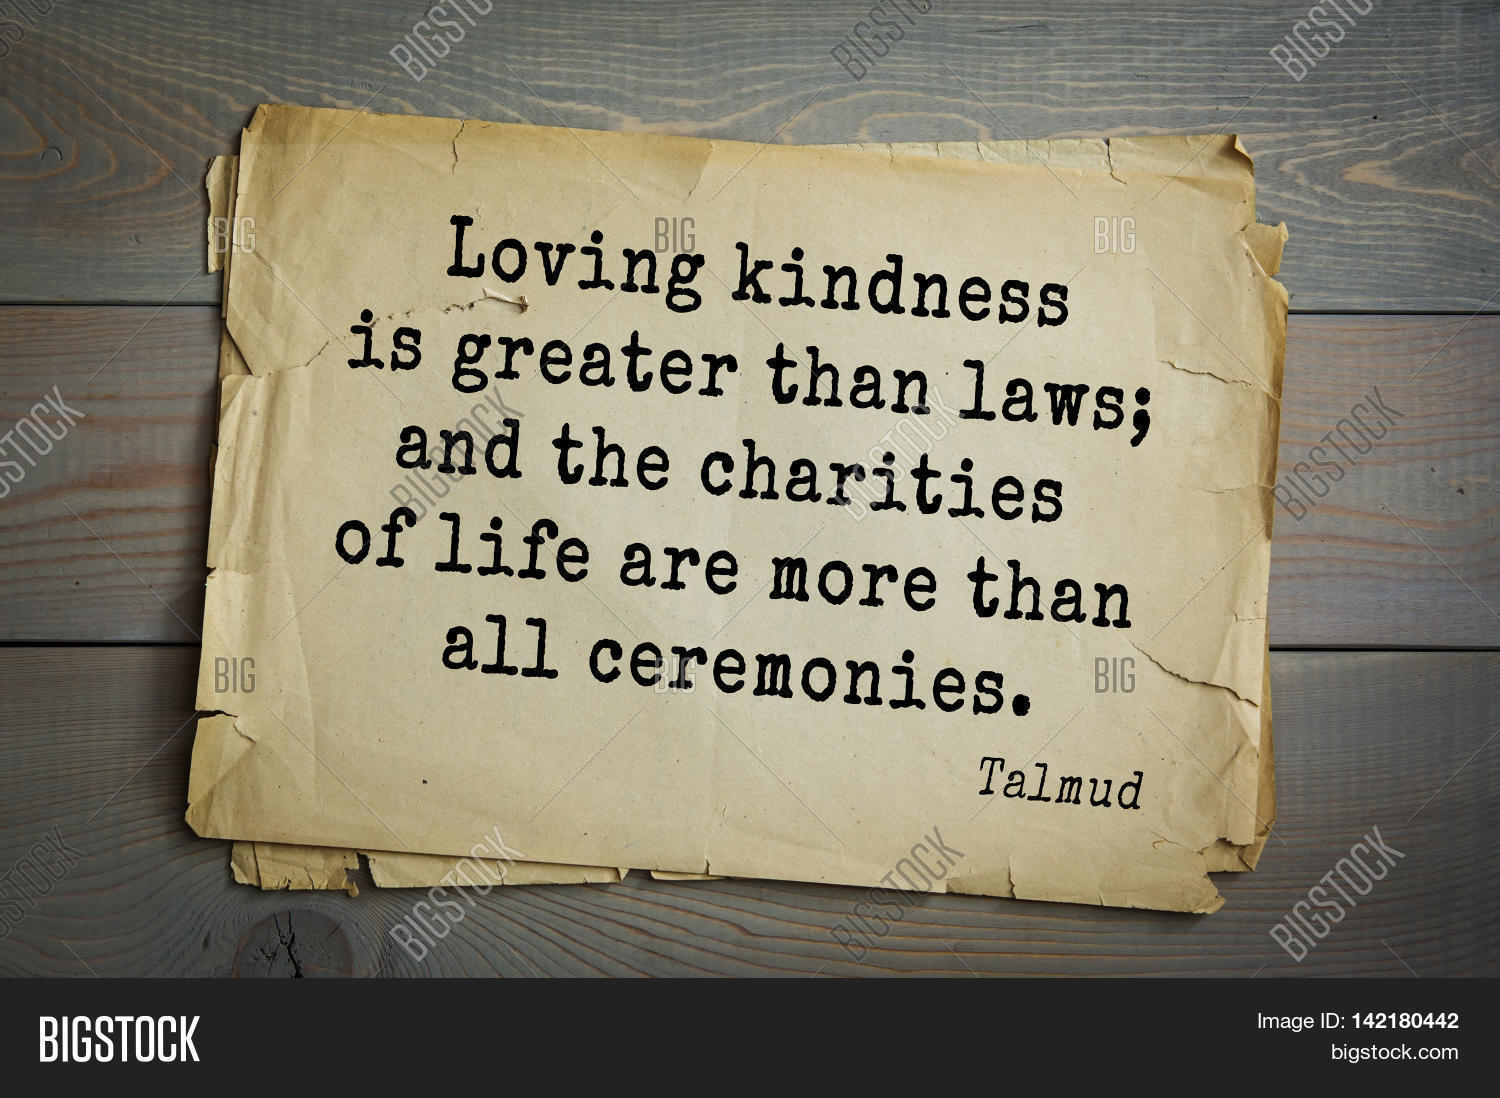 Laws Of Life Quotes Top 70 Talmud Quote.loving Kindness Image & Photo  Bigstock